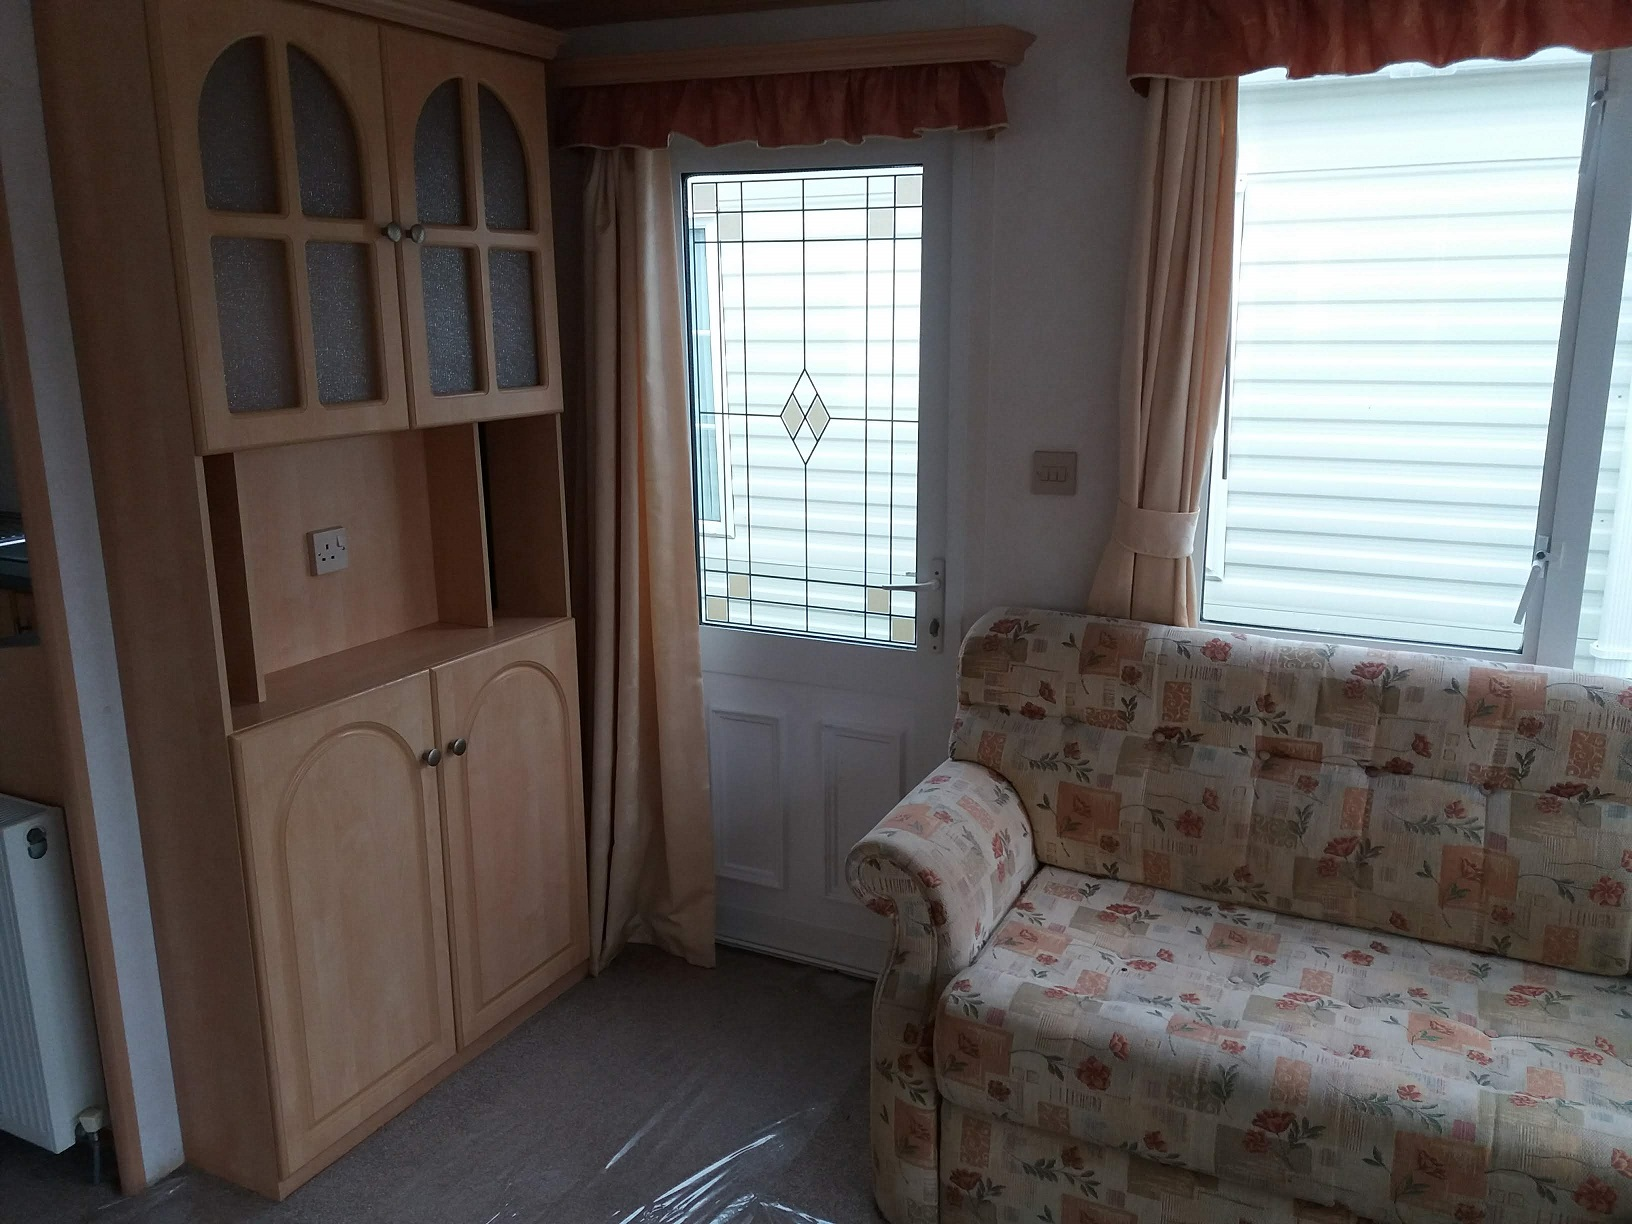 Carnaby Belvedere - 3 Bedrooms: Static Caravans for Temporary Accommodation, Clifton, Morpeth Image 2